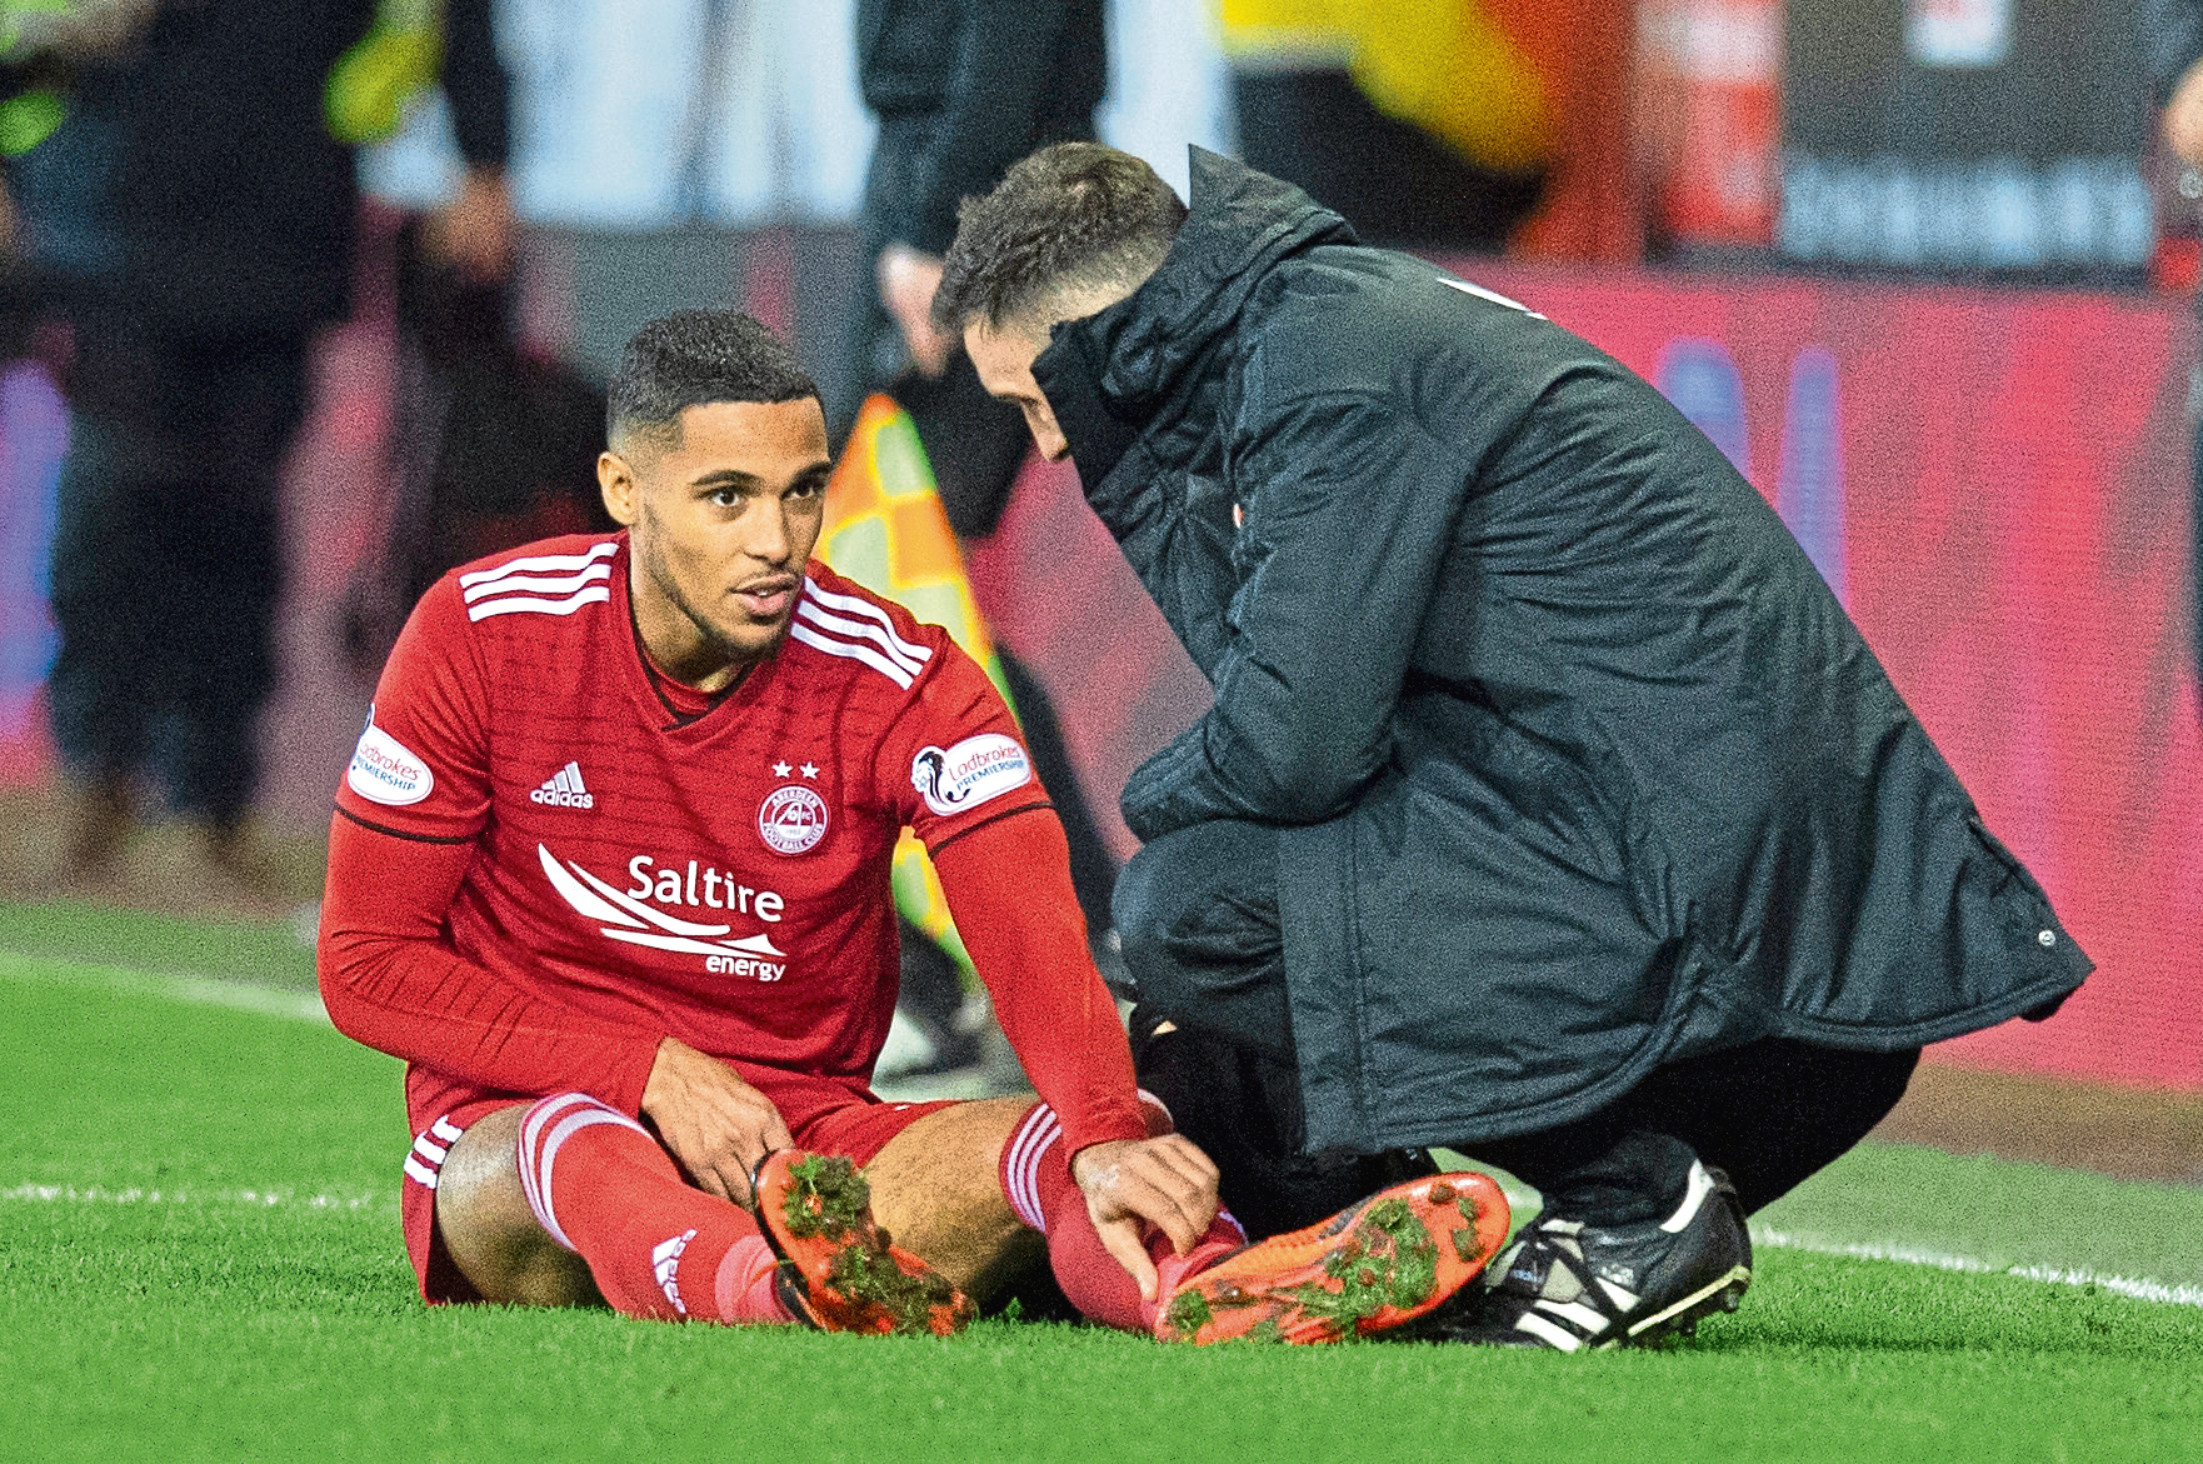 Aberdeen's Max Lowe receives treatment for an injury.